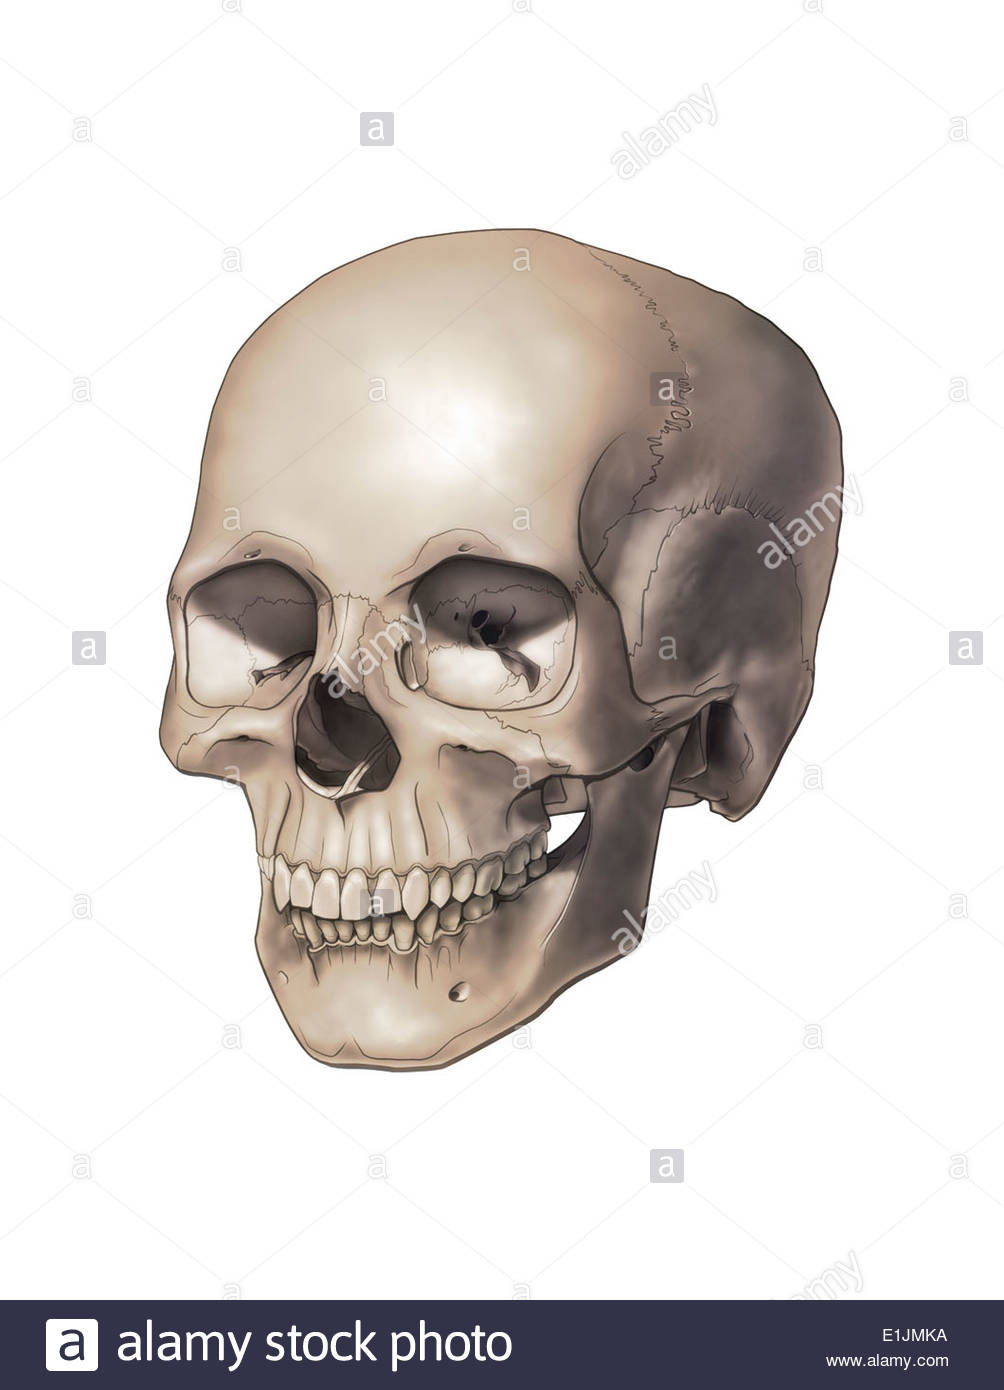 Color illustration of a human skull. - Stock Image